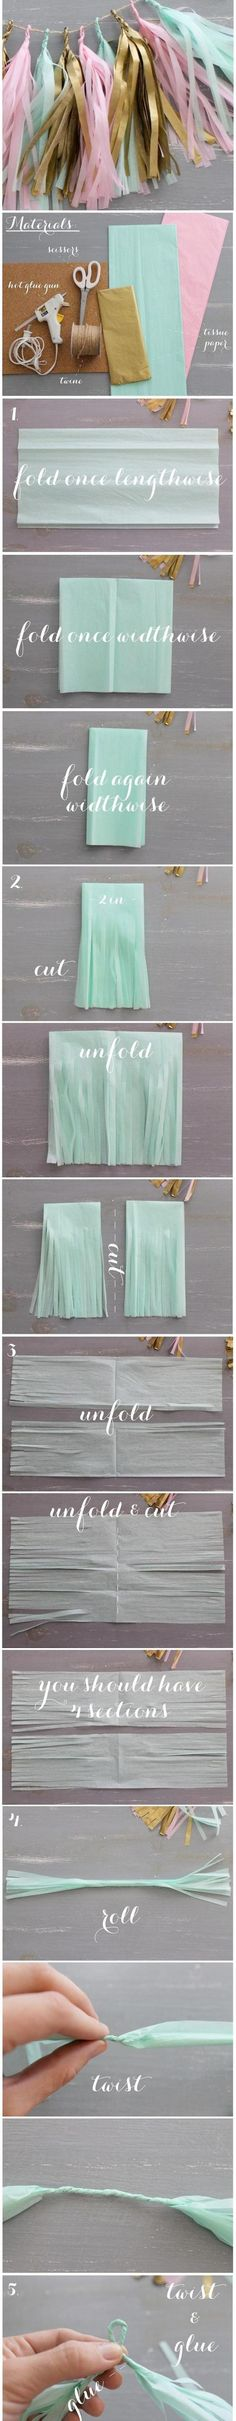 10 DIY Party Crafts DIY Tassel Garland in pretty pastels. Perfect for any celebration from baby showers to first birthday parties.DIY Tassel Garland in pretty pastels. Perfect for any celebration from baby showers to first birthday parties. Unicorn Birthday Parties, First Birthday Parties, Girl Birthday, First Birthdays, Birthday Diy, Birthday Gifts, Birthday Candles, Birthday Celebration, 1st Birthday Girl Party Ideas